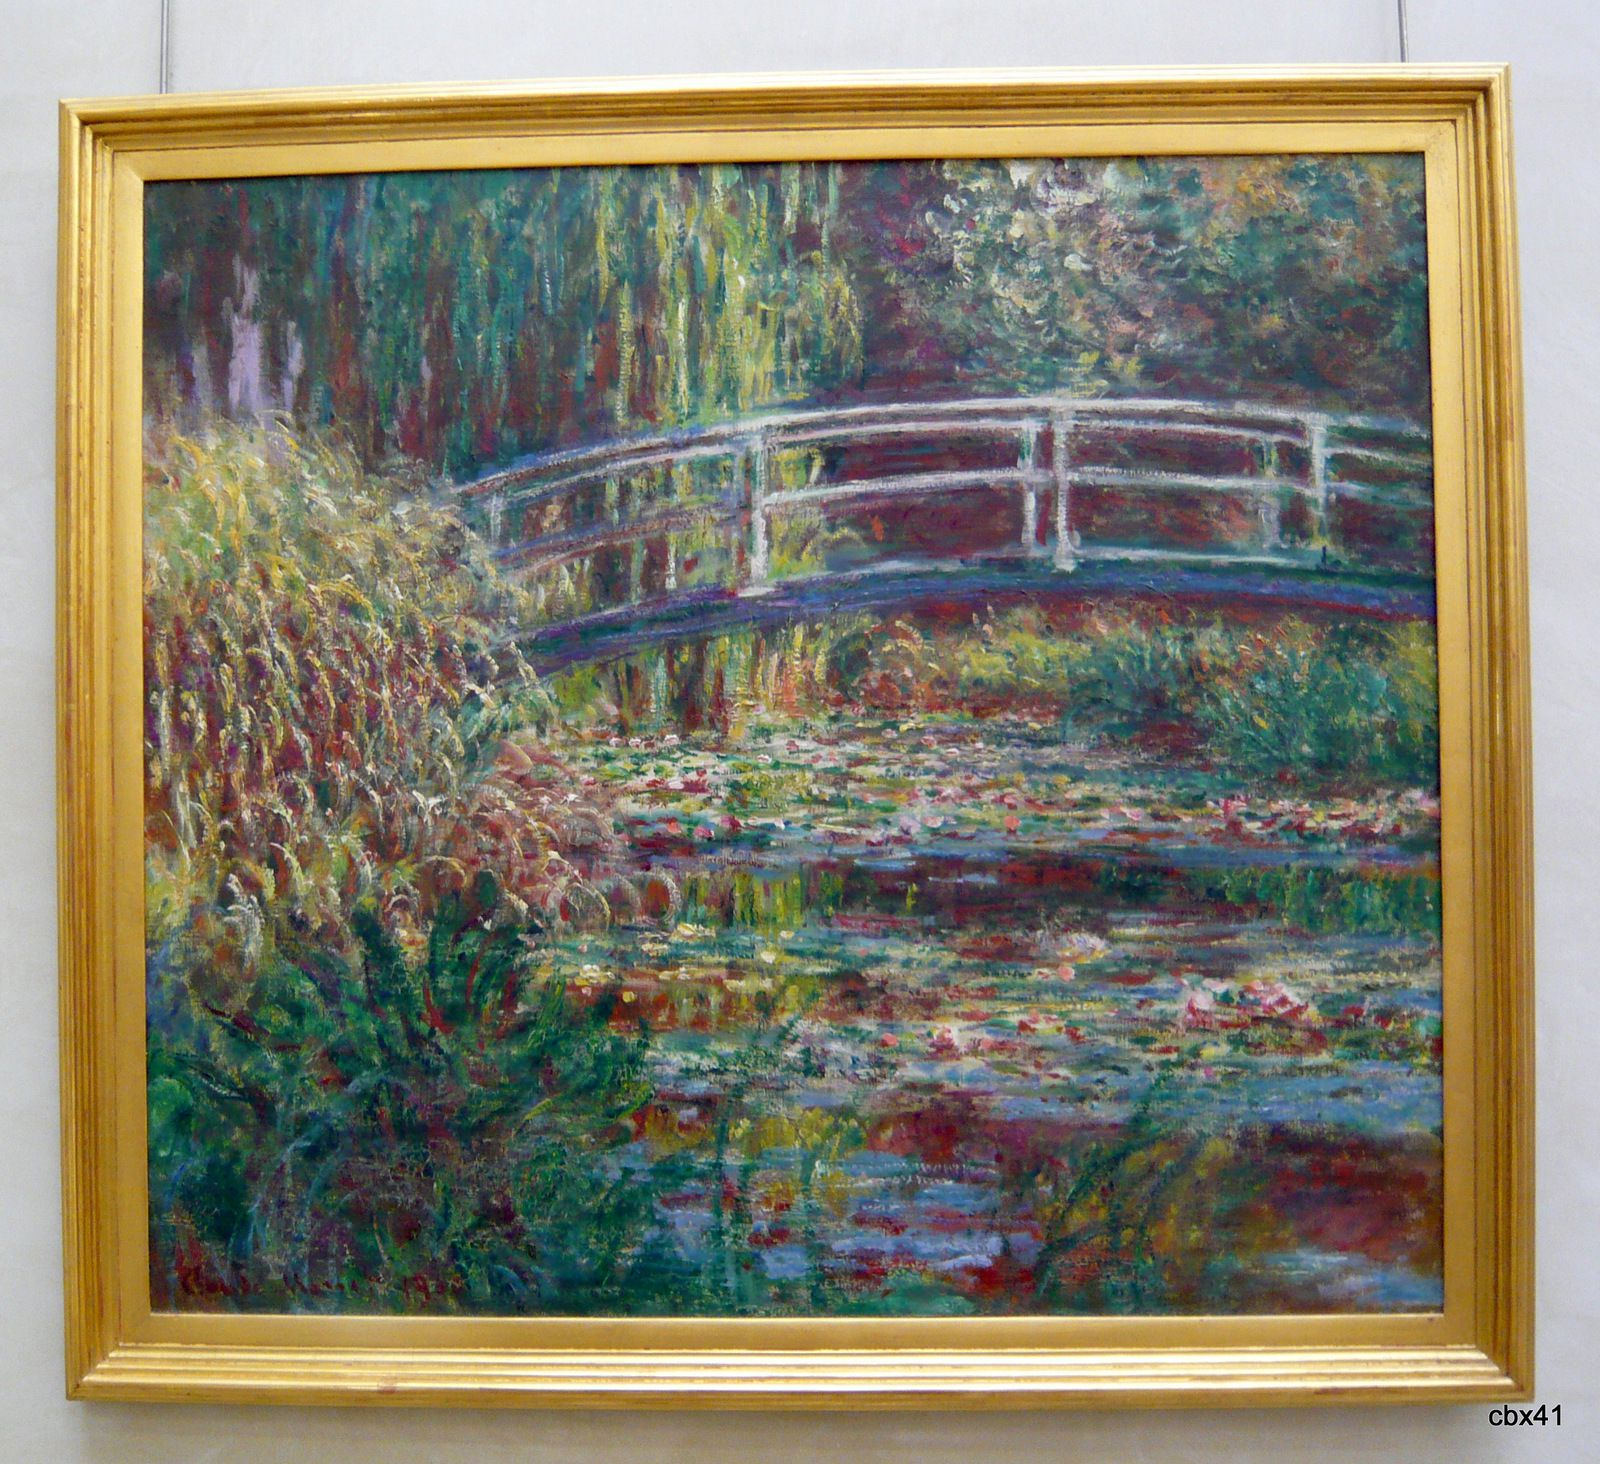 Claude Monet, Nymphéas